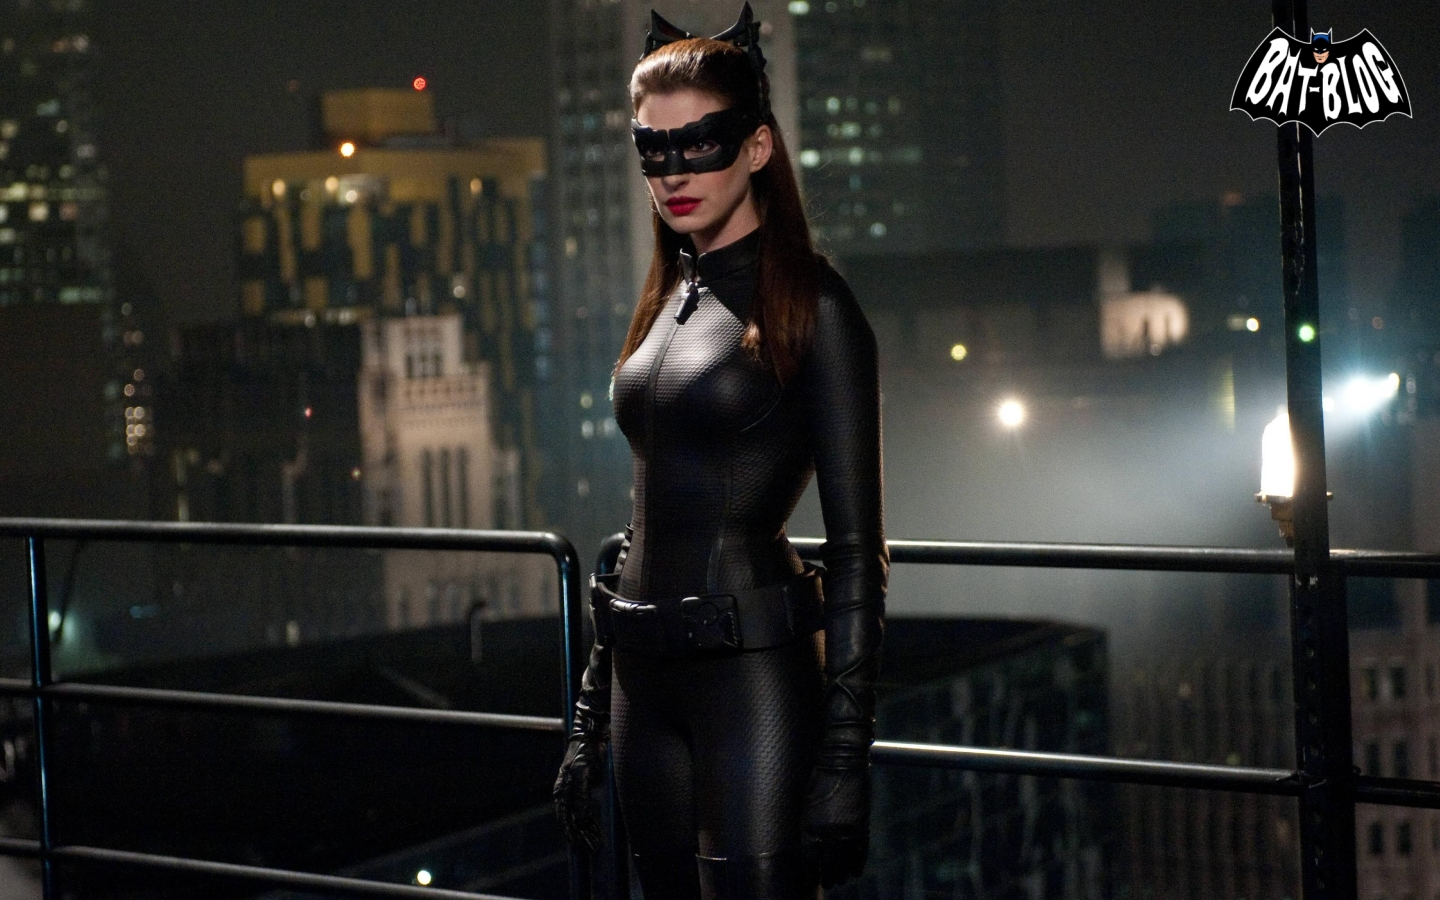 DARK KNIGHT RISES Batman Movie Wallpapers  ANNE HATHAWAY is CATWOMAN